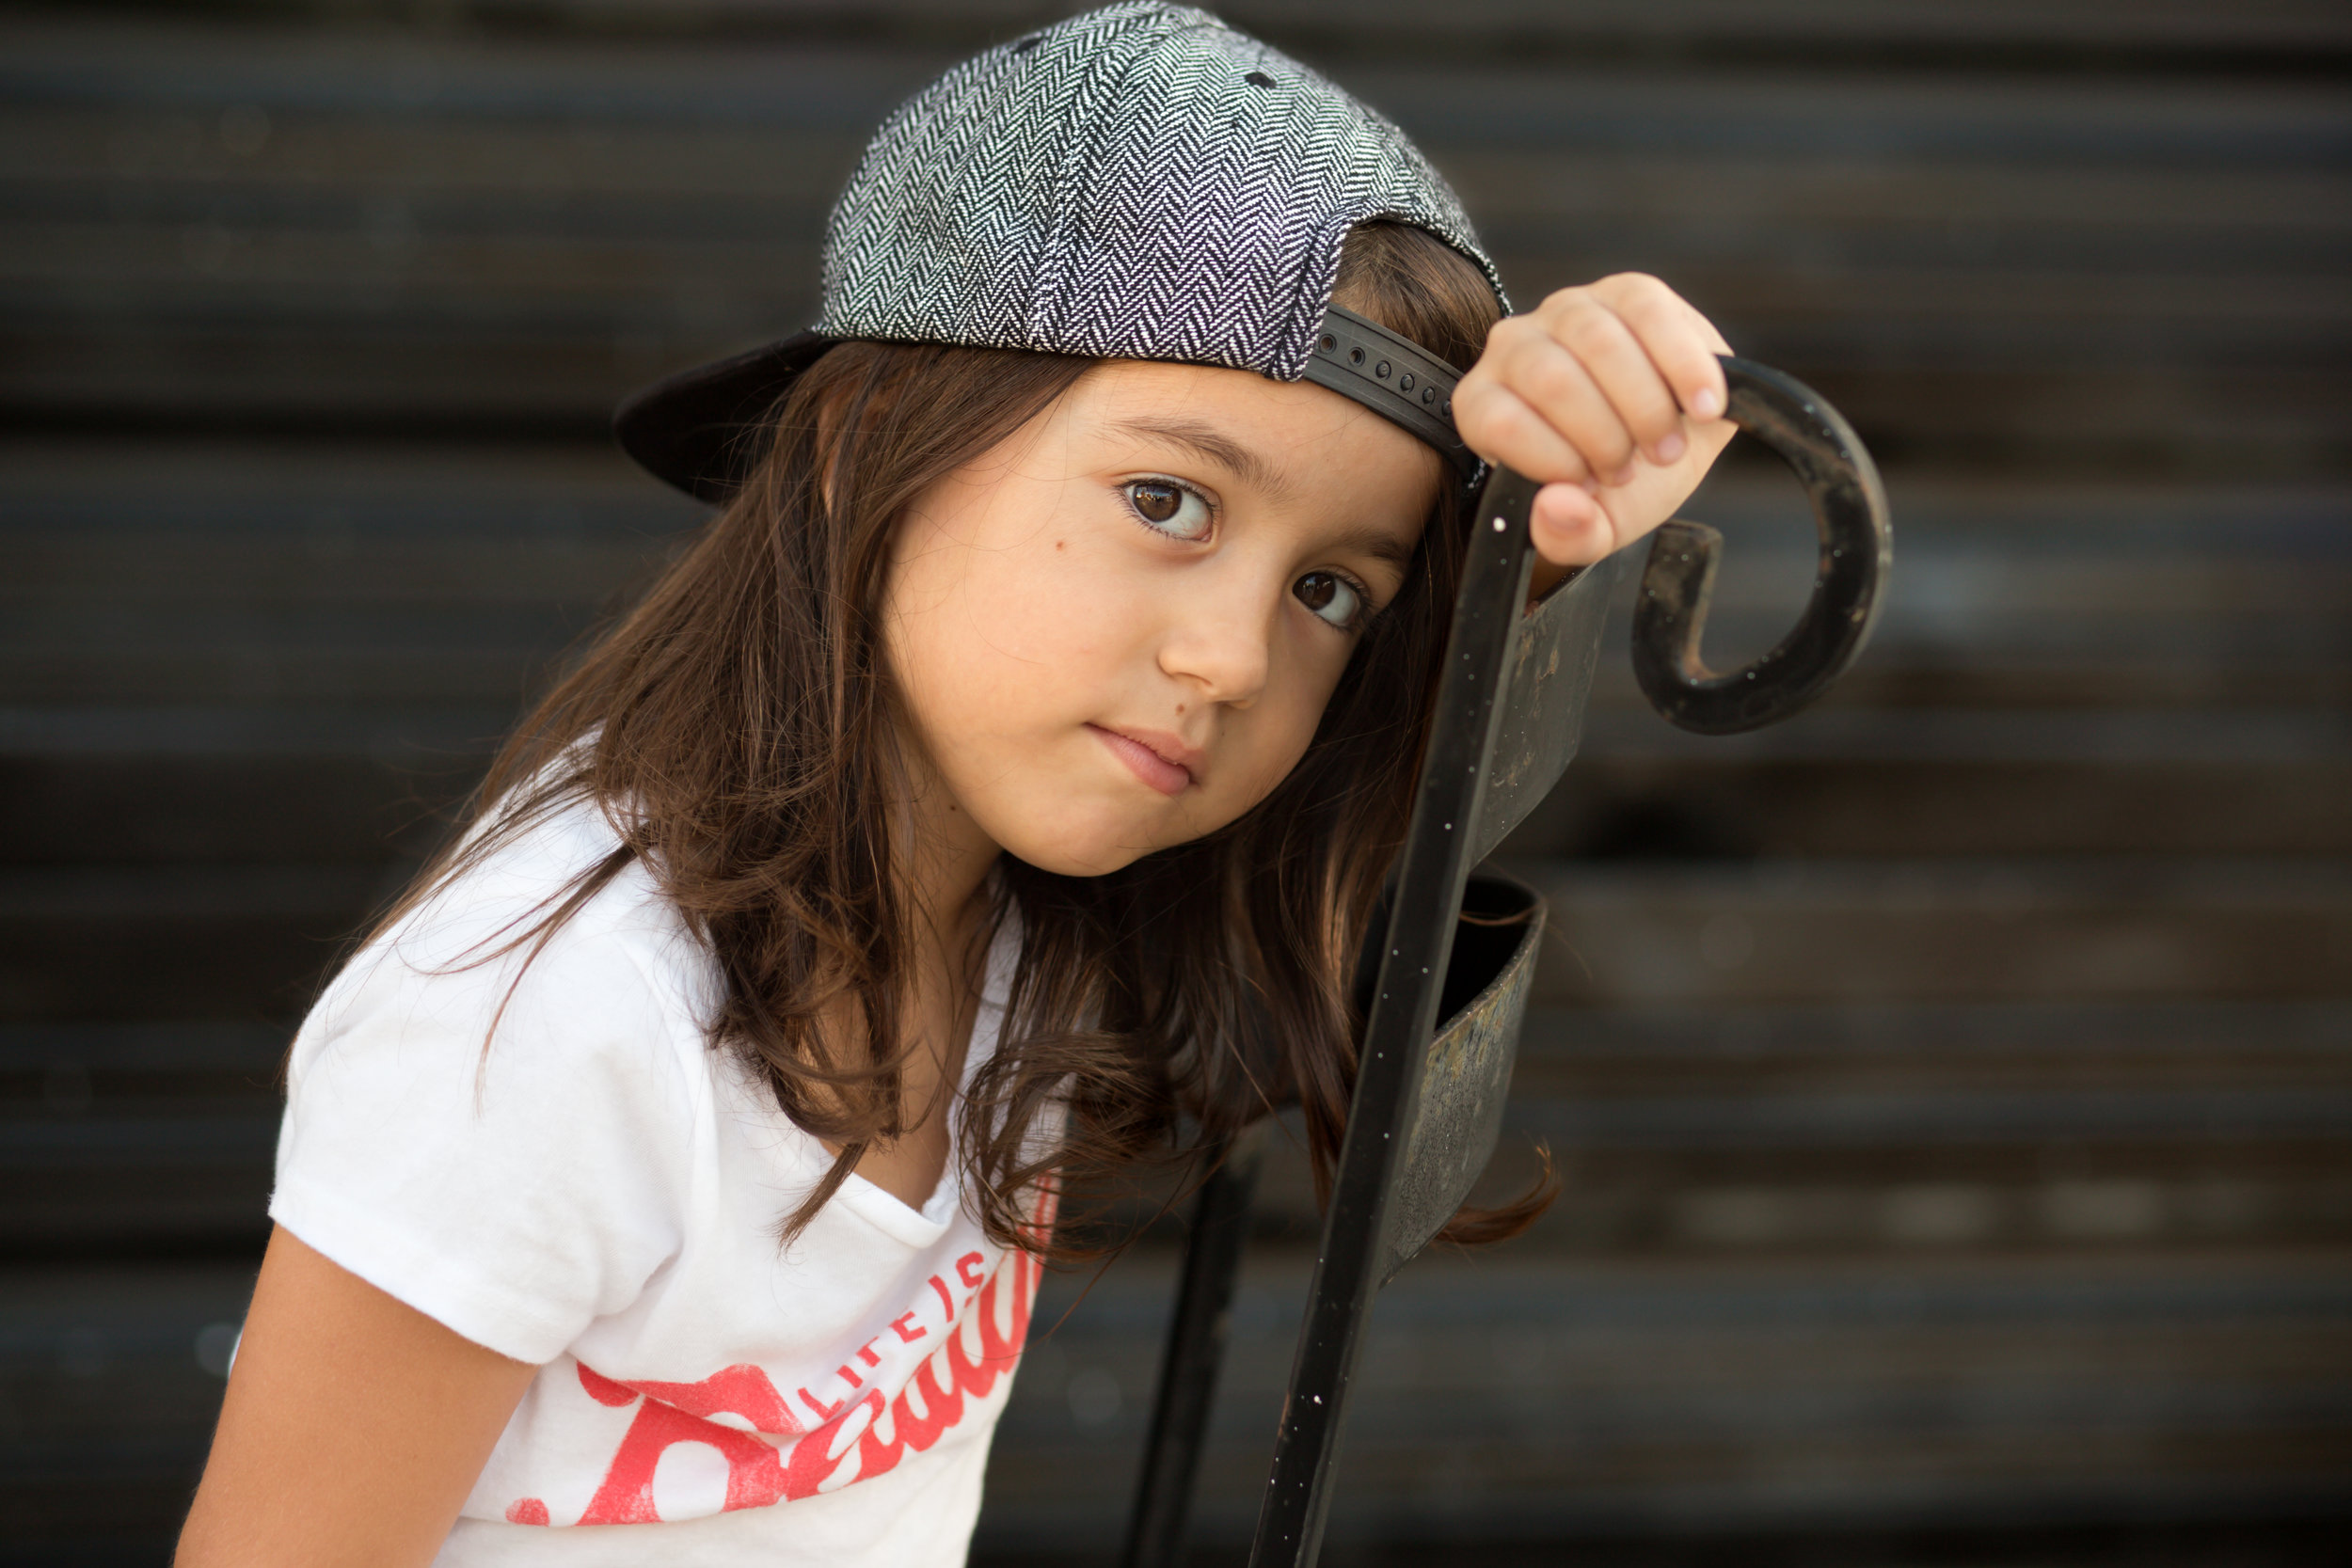 boca-raton-child-photographer-kid-model-head-shot-headshot-headshots-parkland-coral-springs-miami-fort-lauderdale-alissa-delucca-photography-serious-fierce.jpg